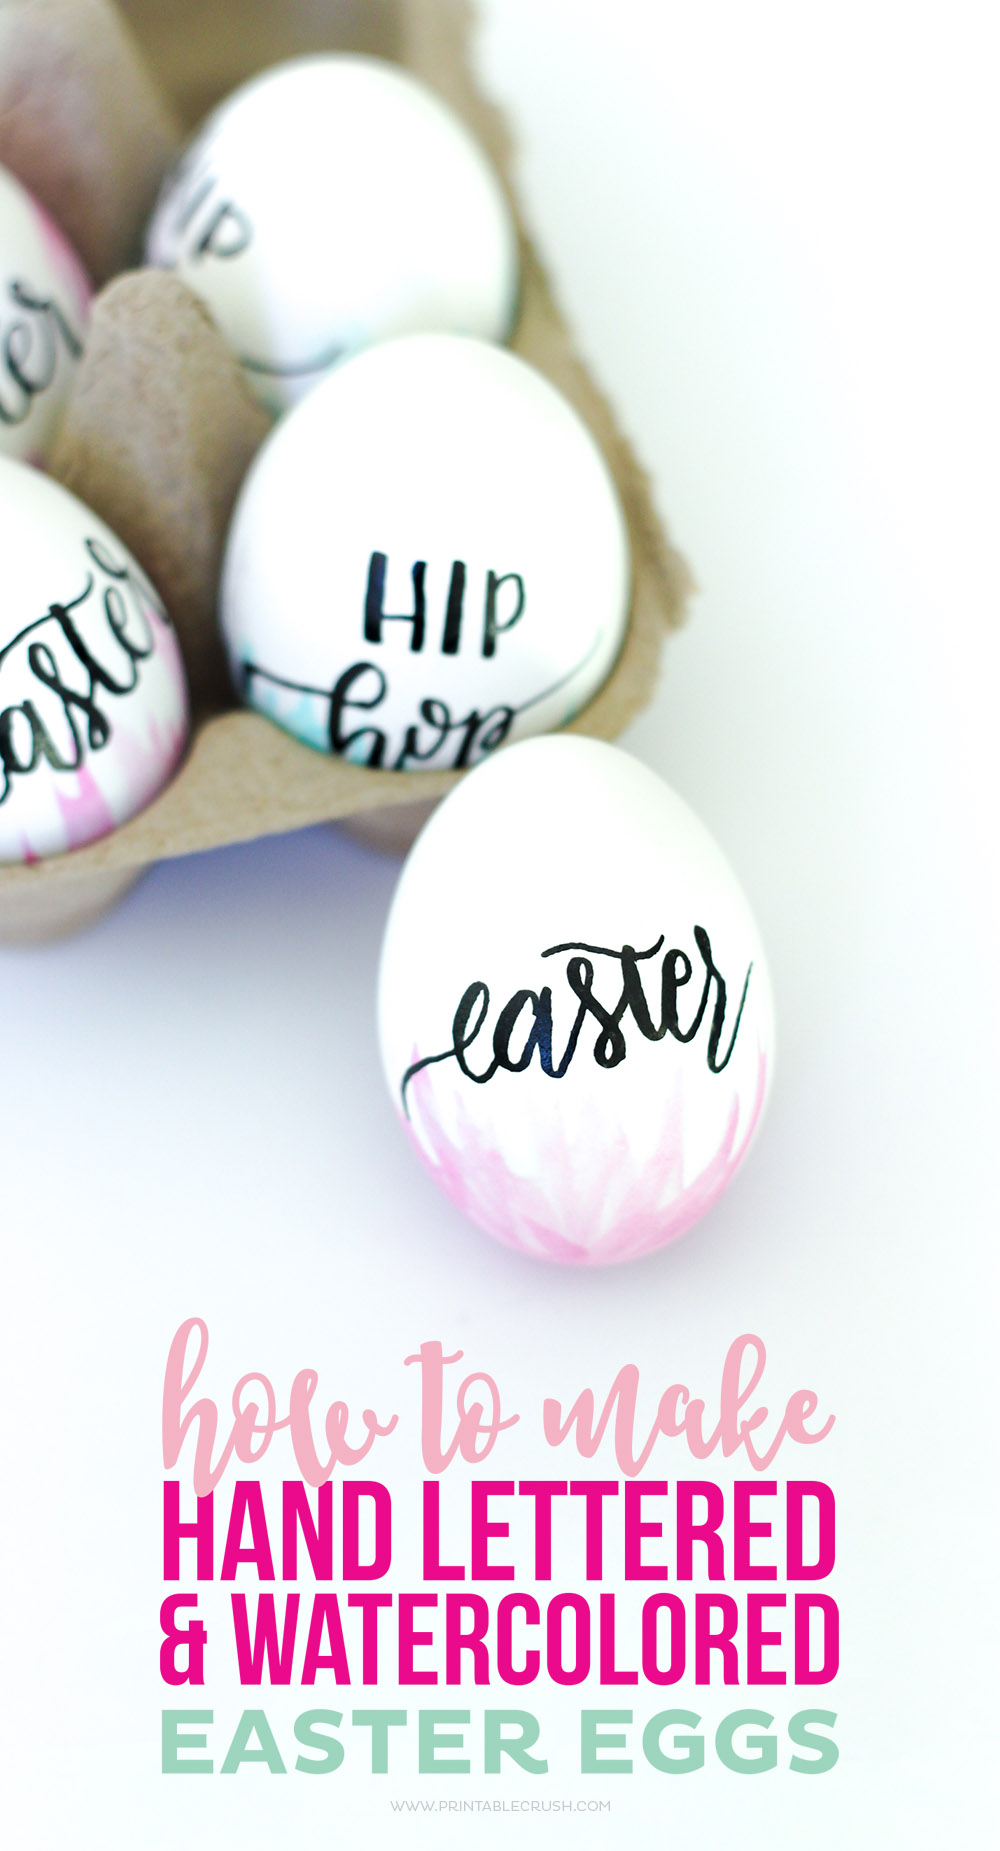 http://printablecrush.com/wp-content/uploads/2017/03/Hand-Lettered-and-Watercolor-Easter-Eggs-12-copy.jpg